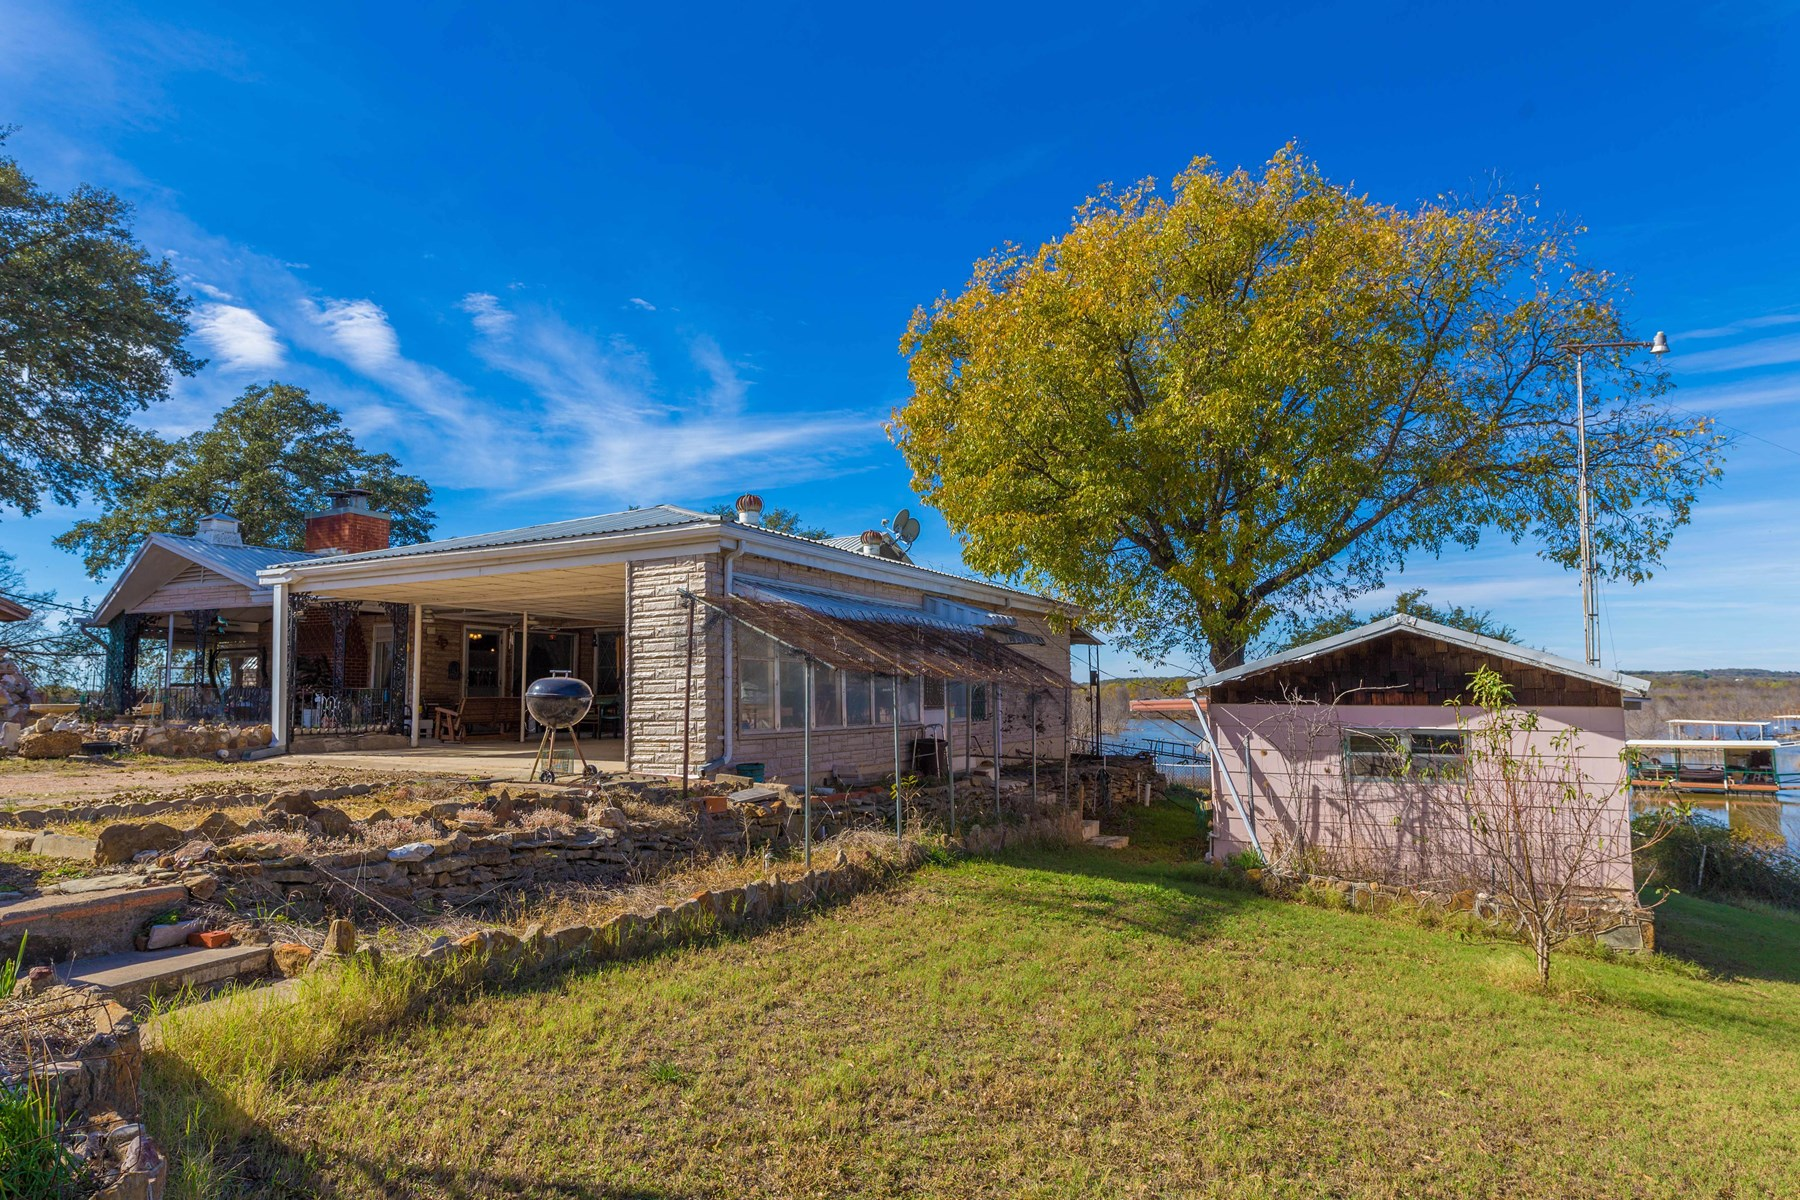 Brownwood TX Lakefront Property Lake House for sale TX